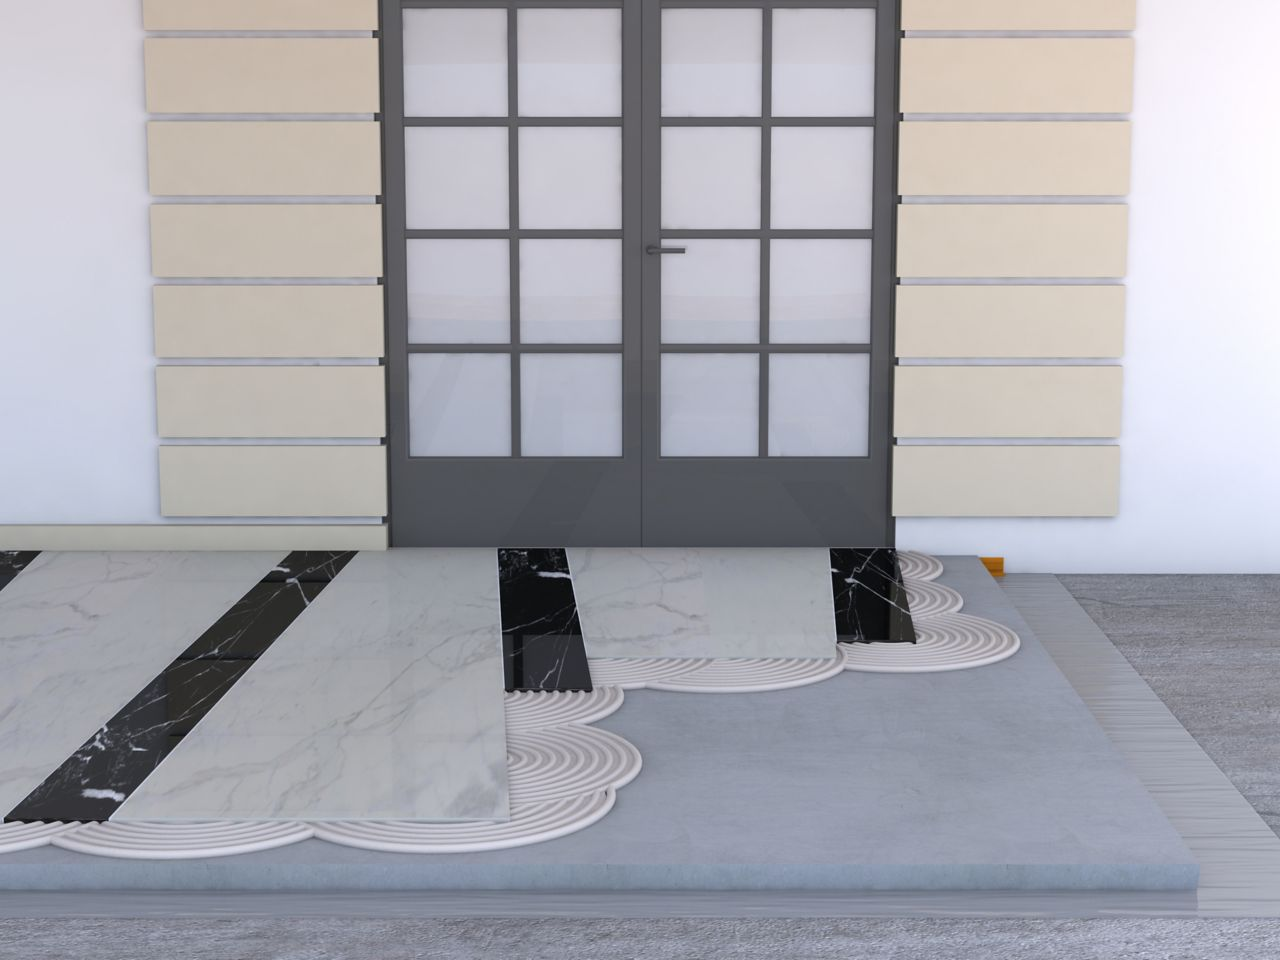 Illustration of tile setting adhesives at entry door terrace with marble stone tiles in black and white